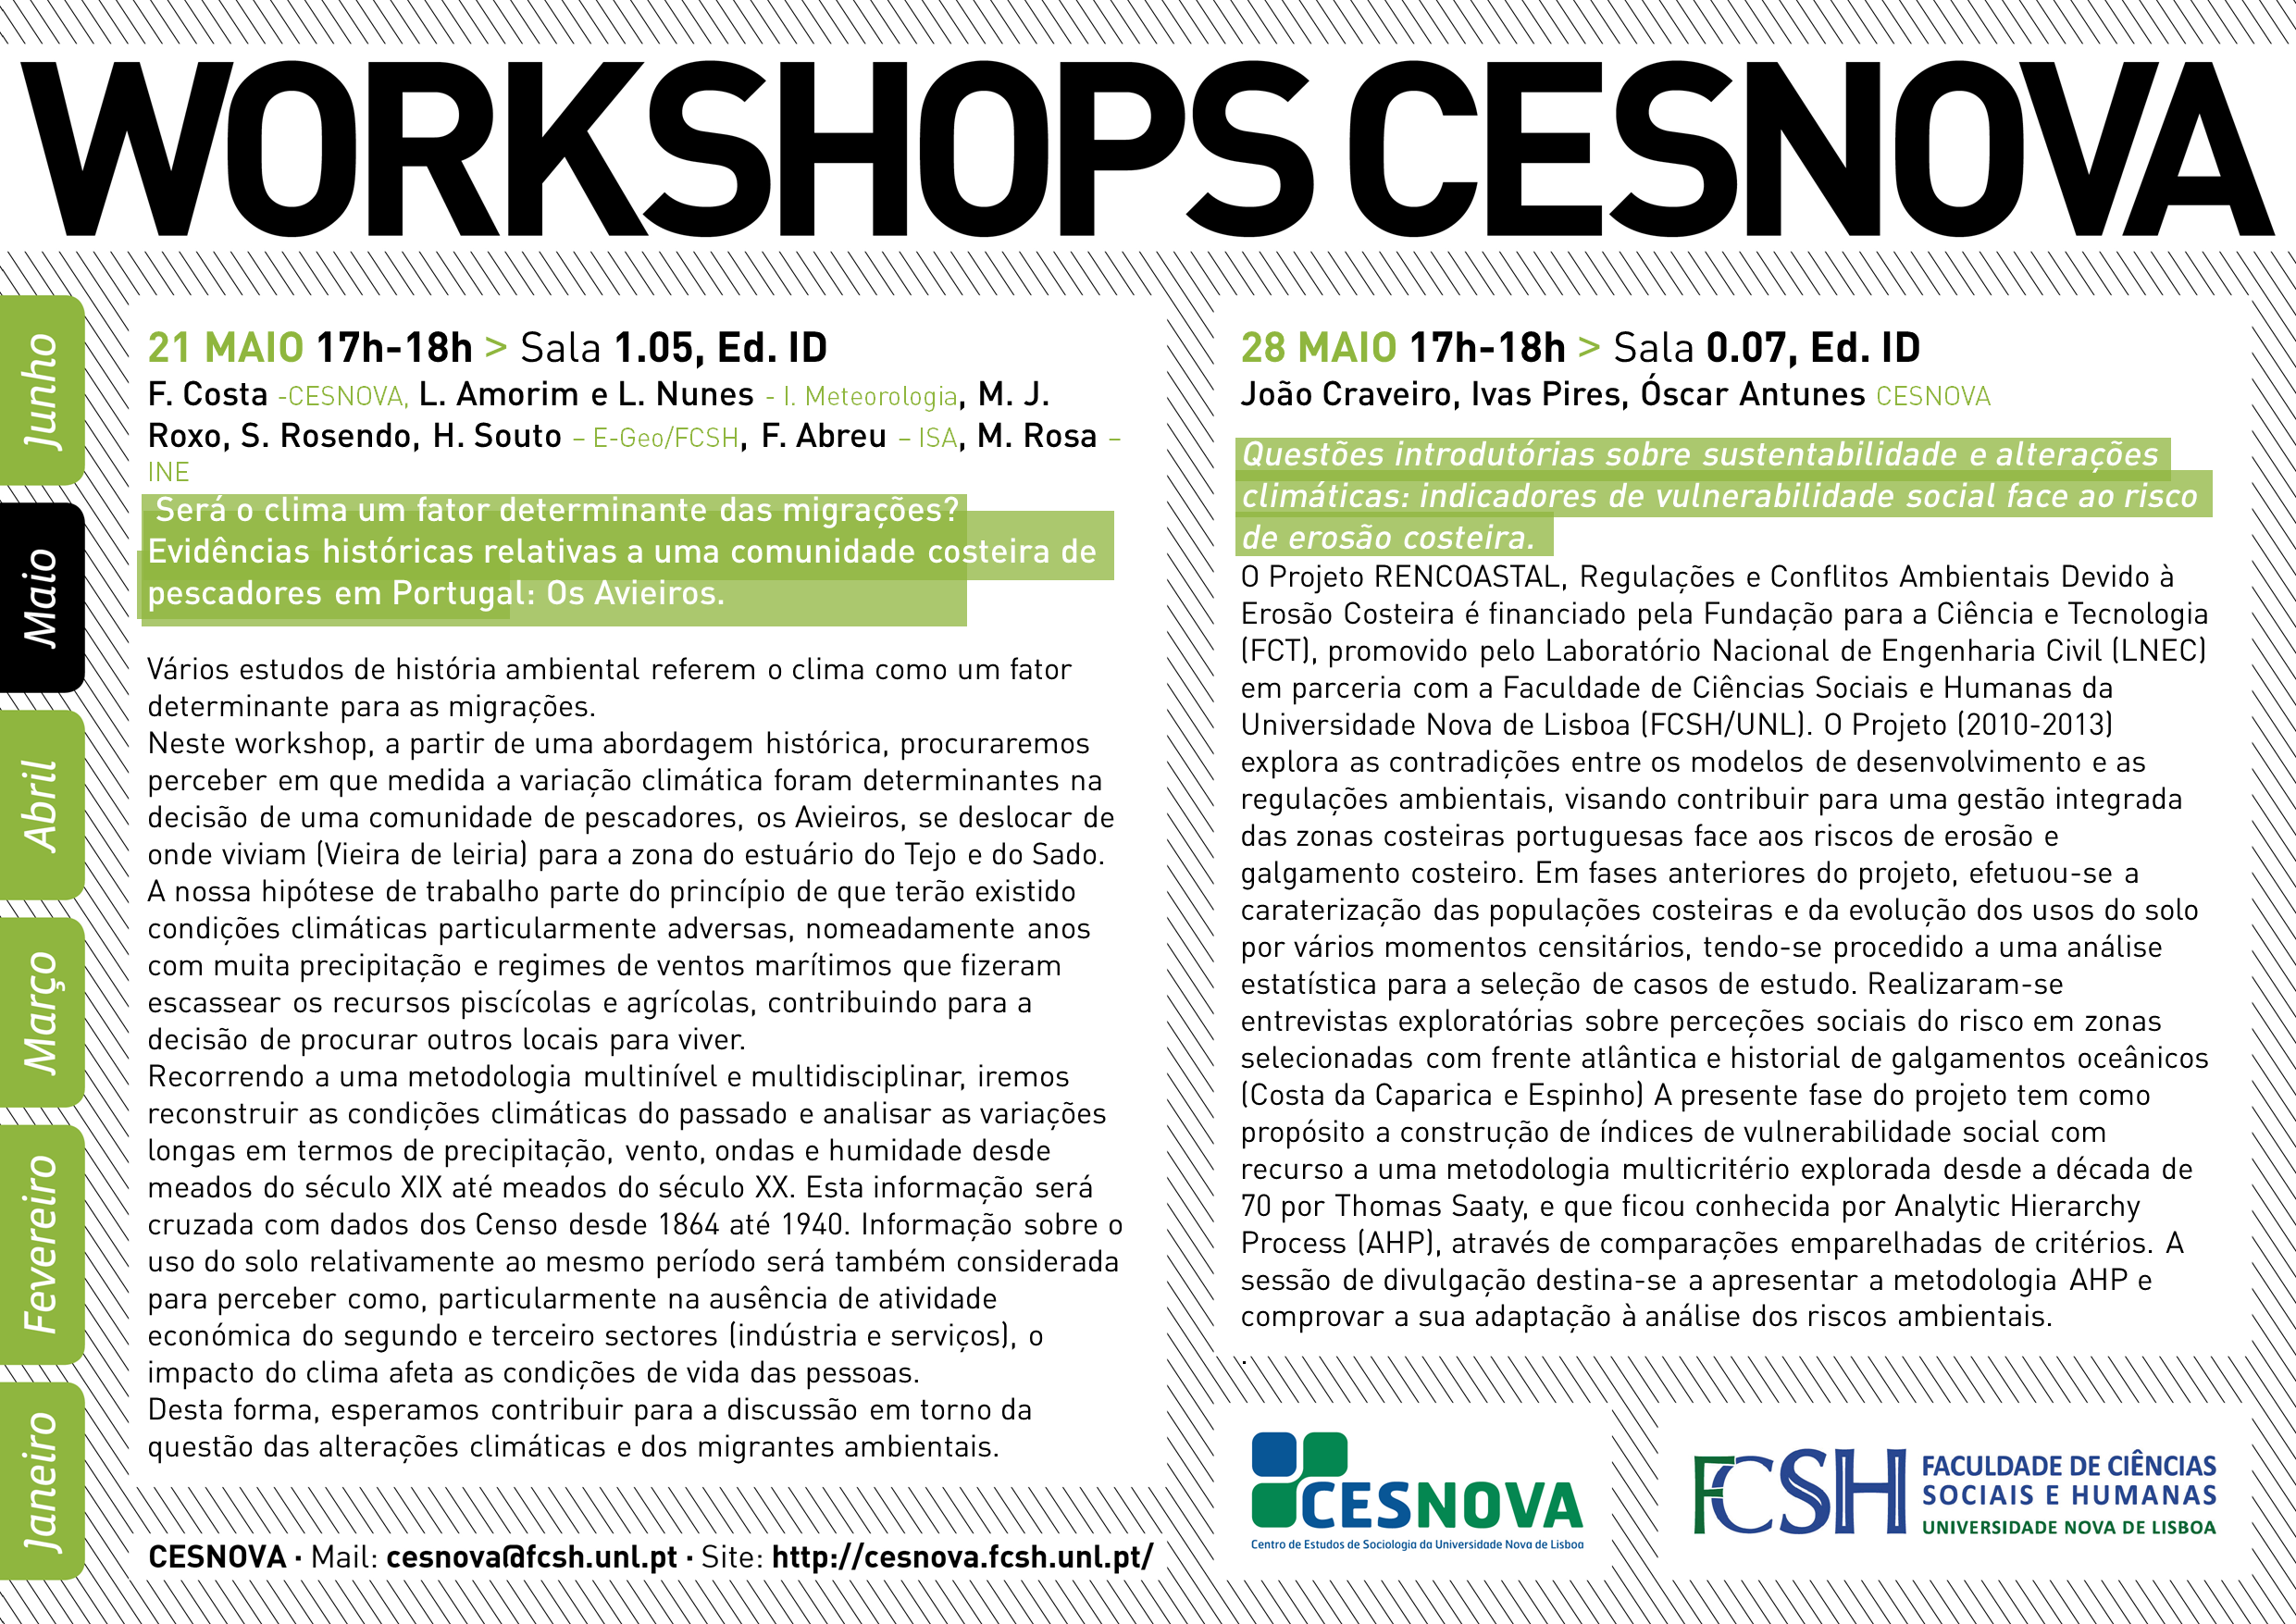 Workshops CesNova